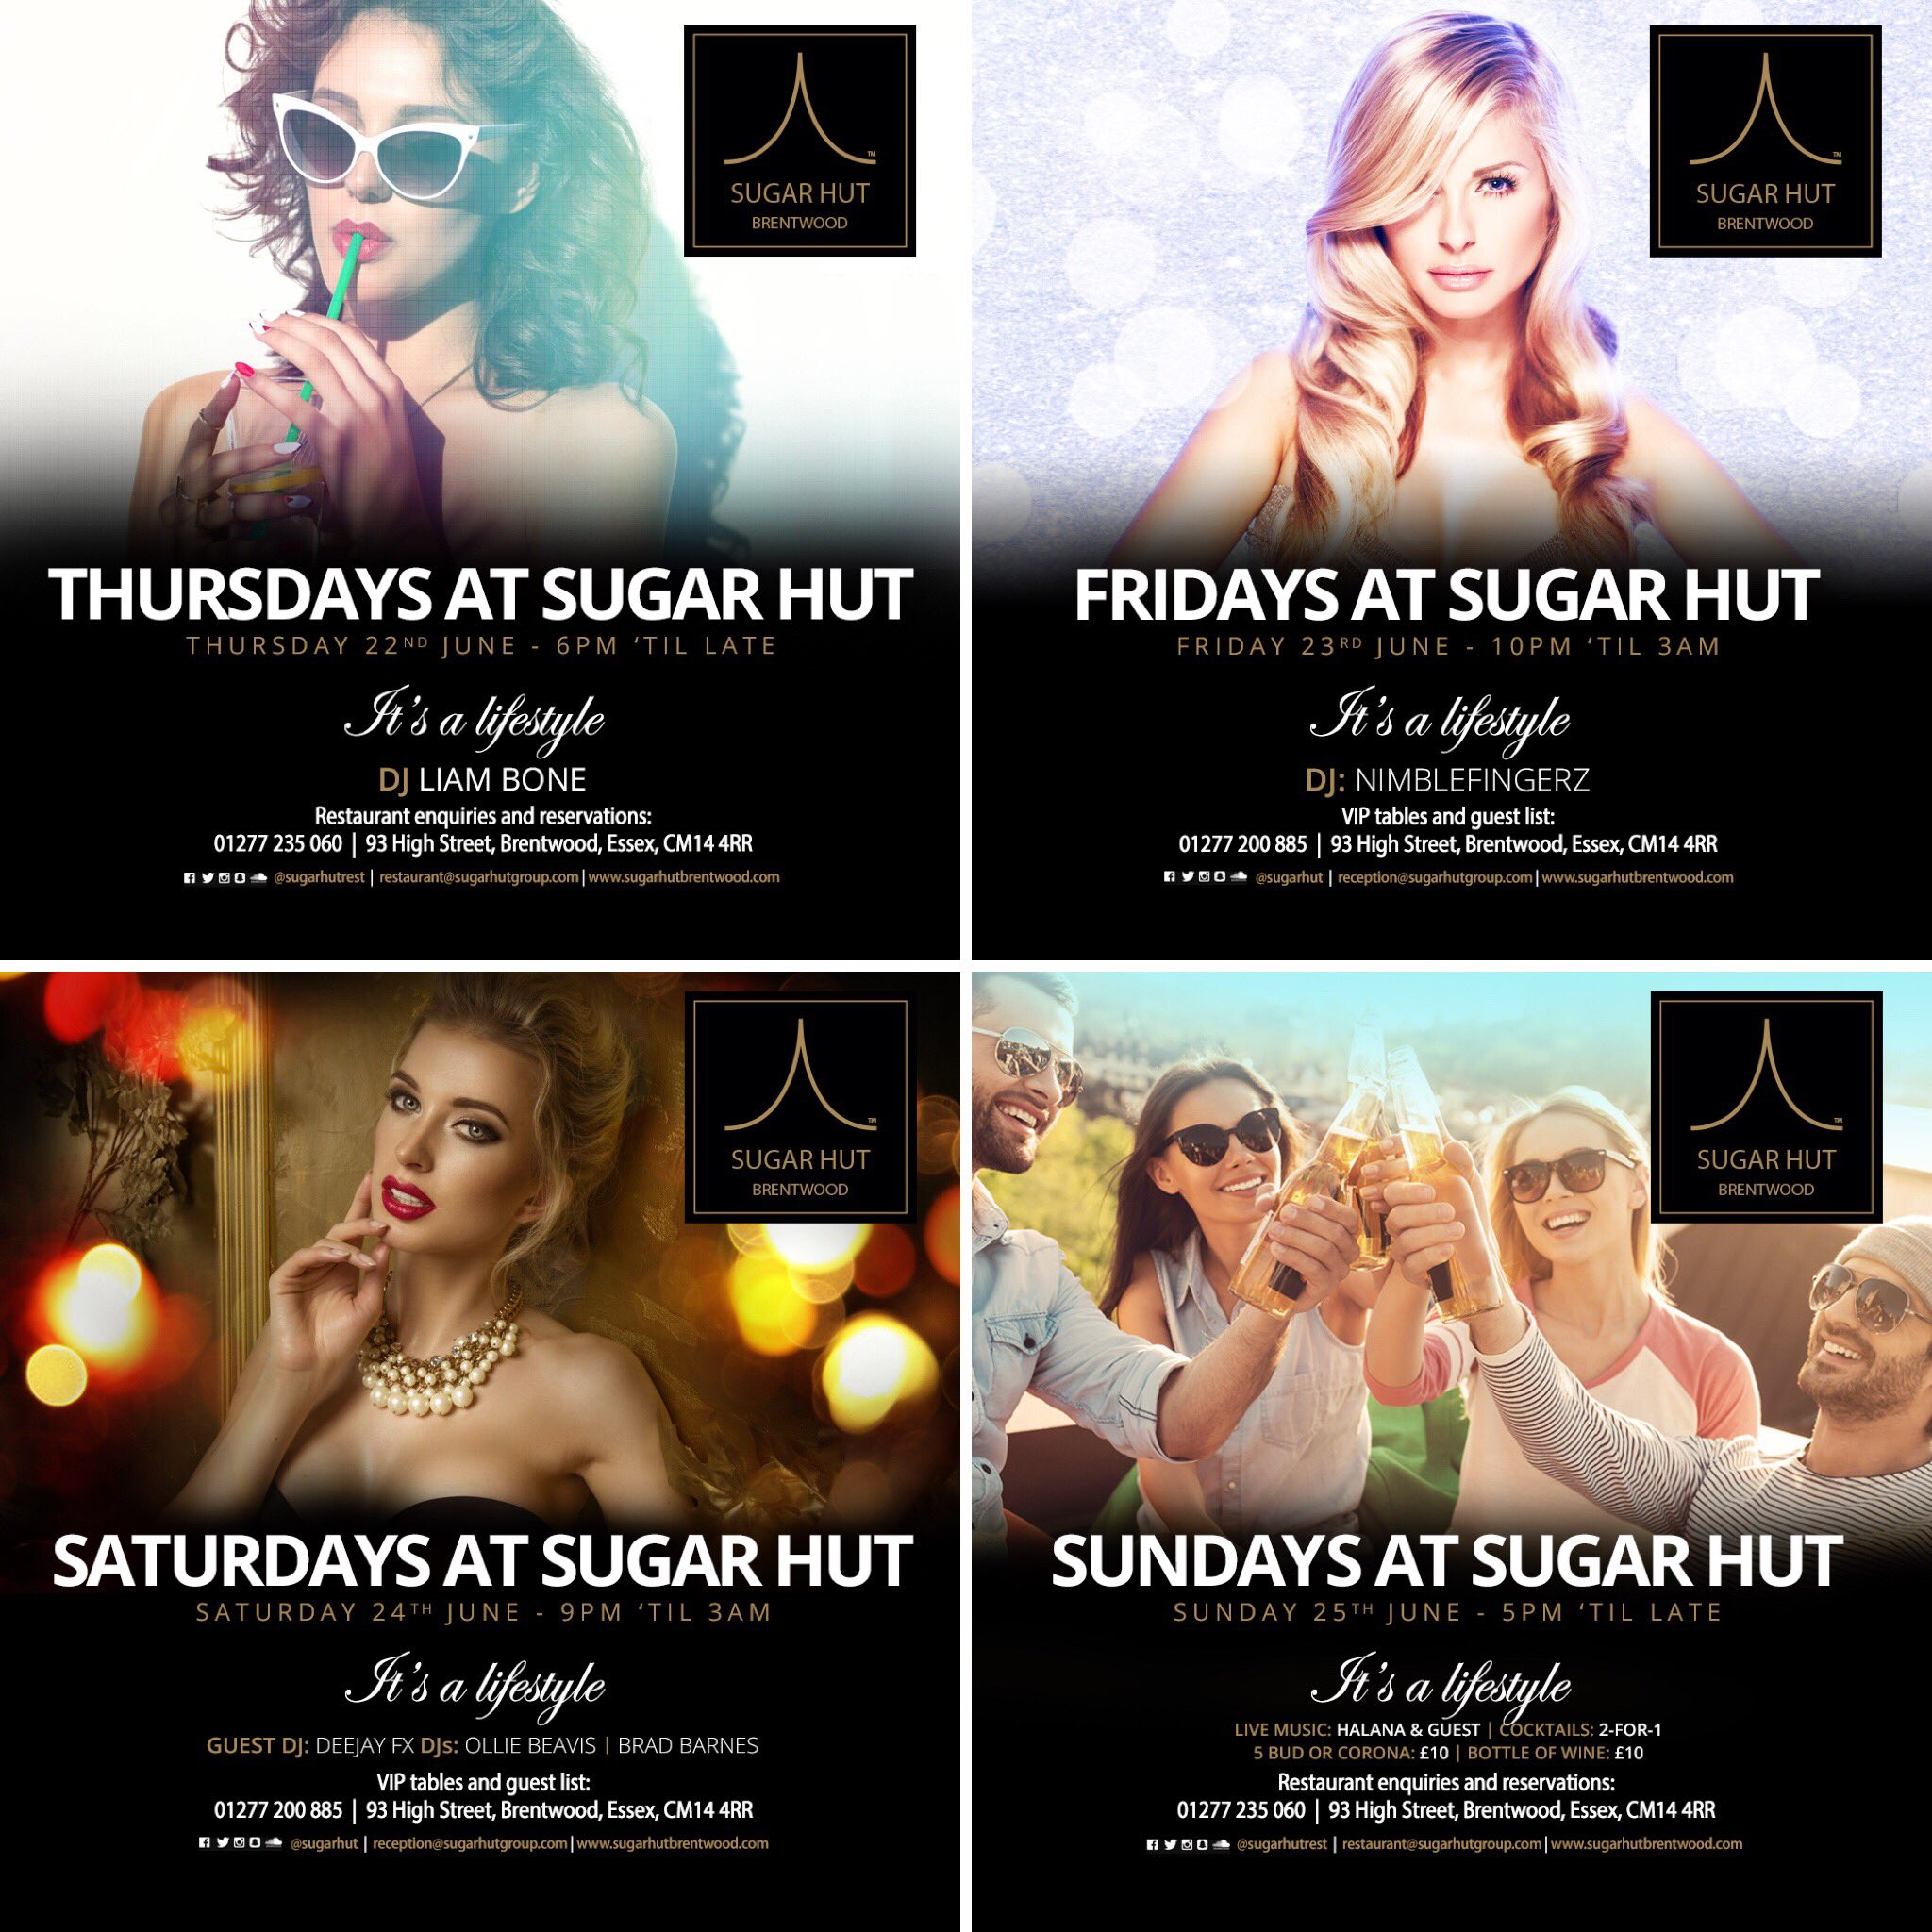 For all VIP table enquiries call us on 01277 200885 https://t.co/2IV2zEuWya